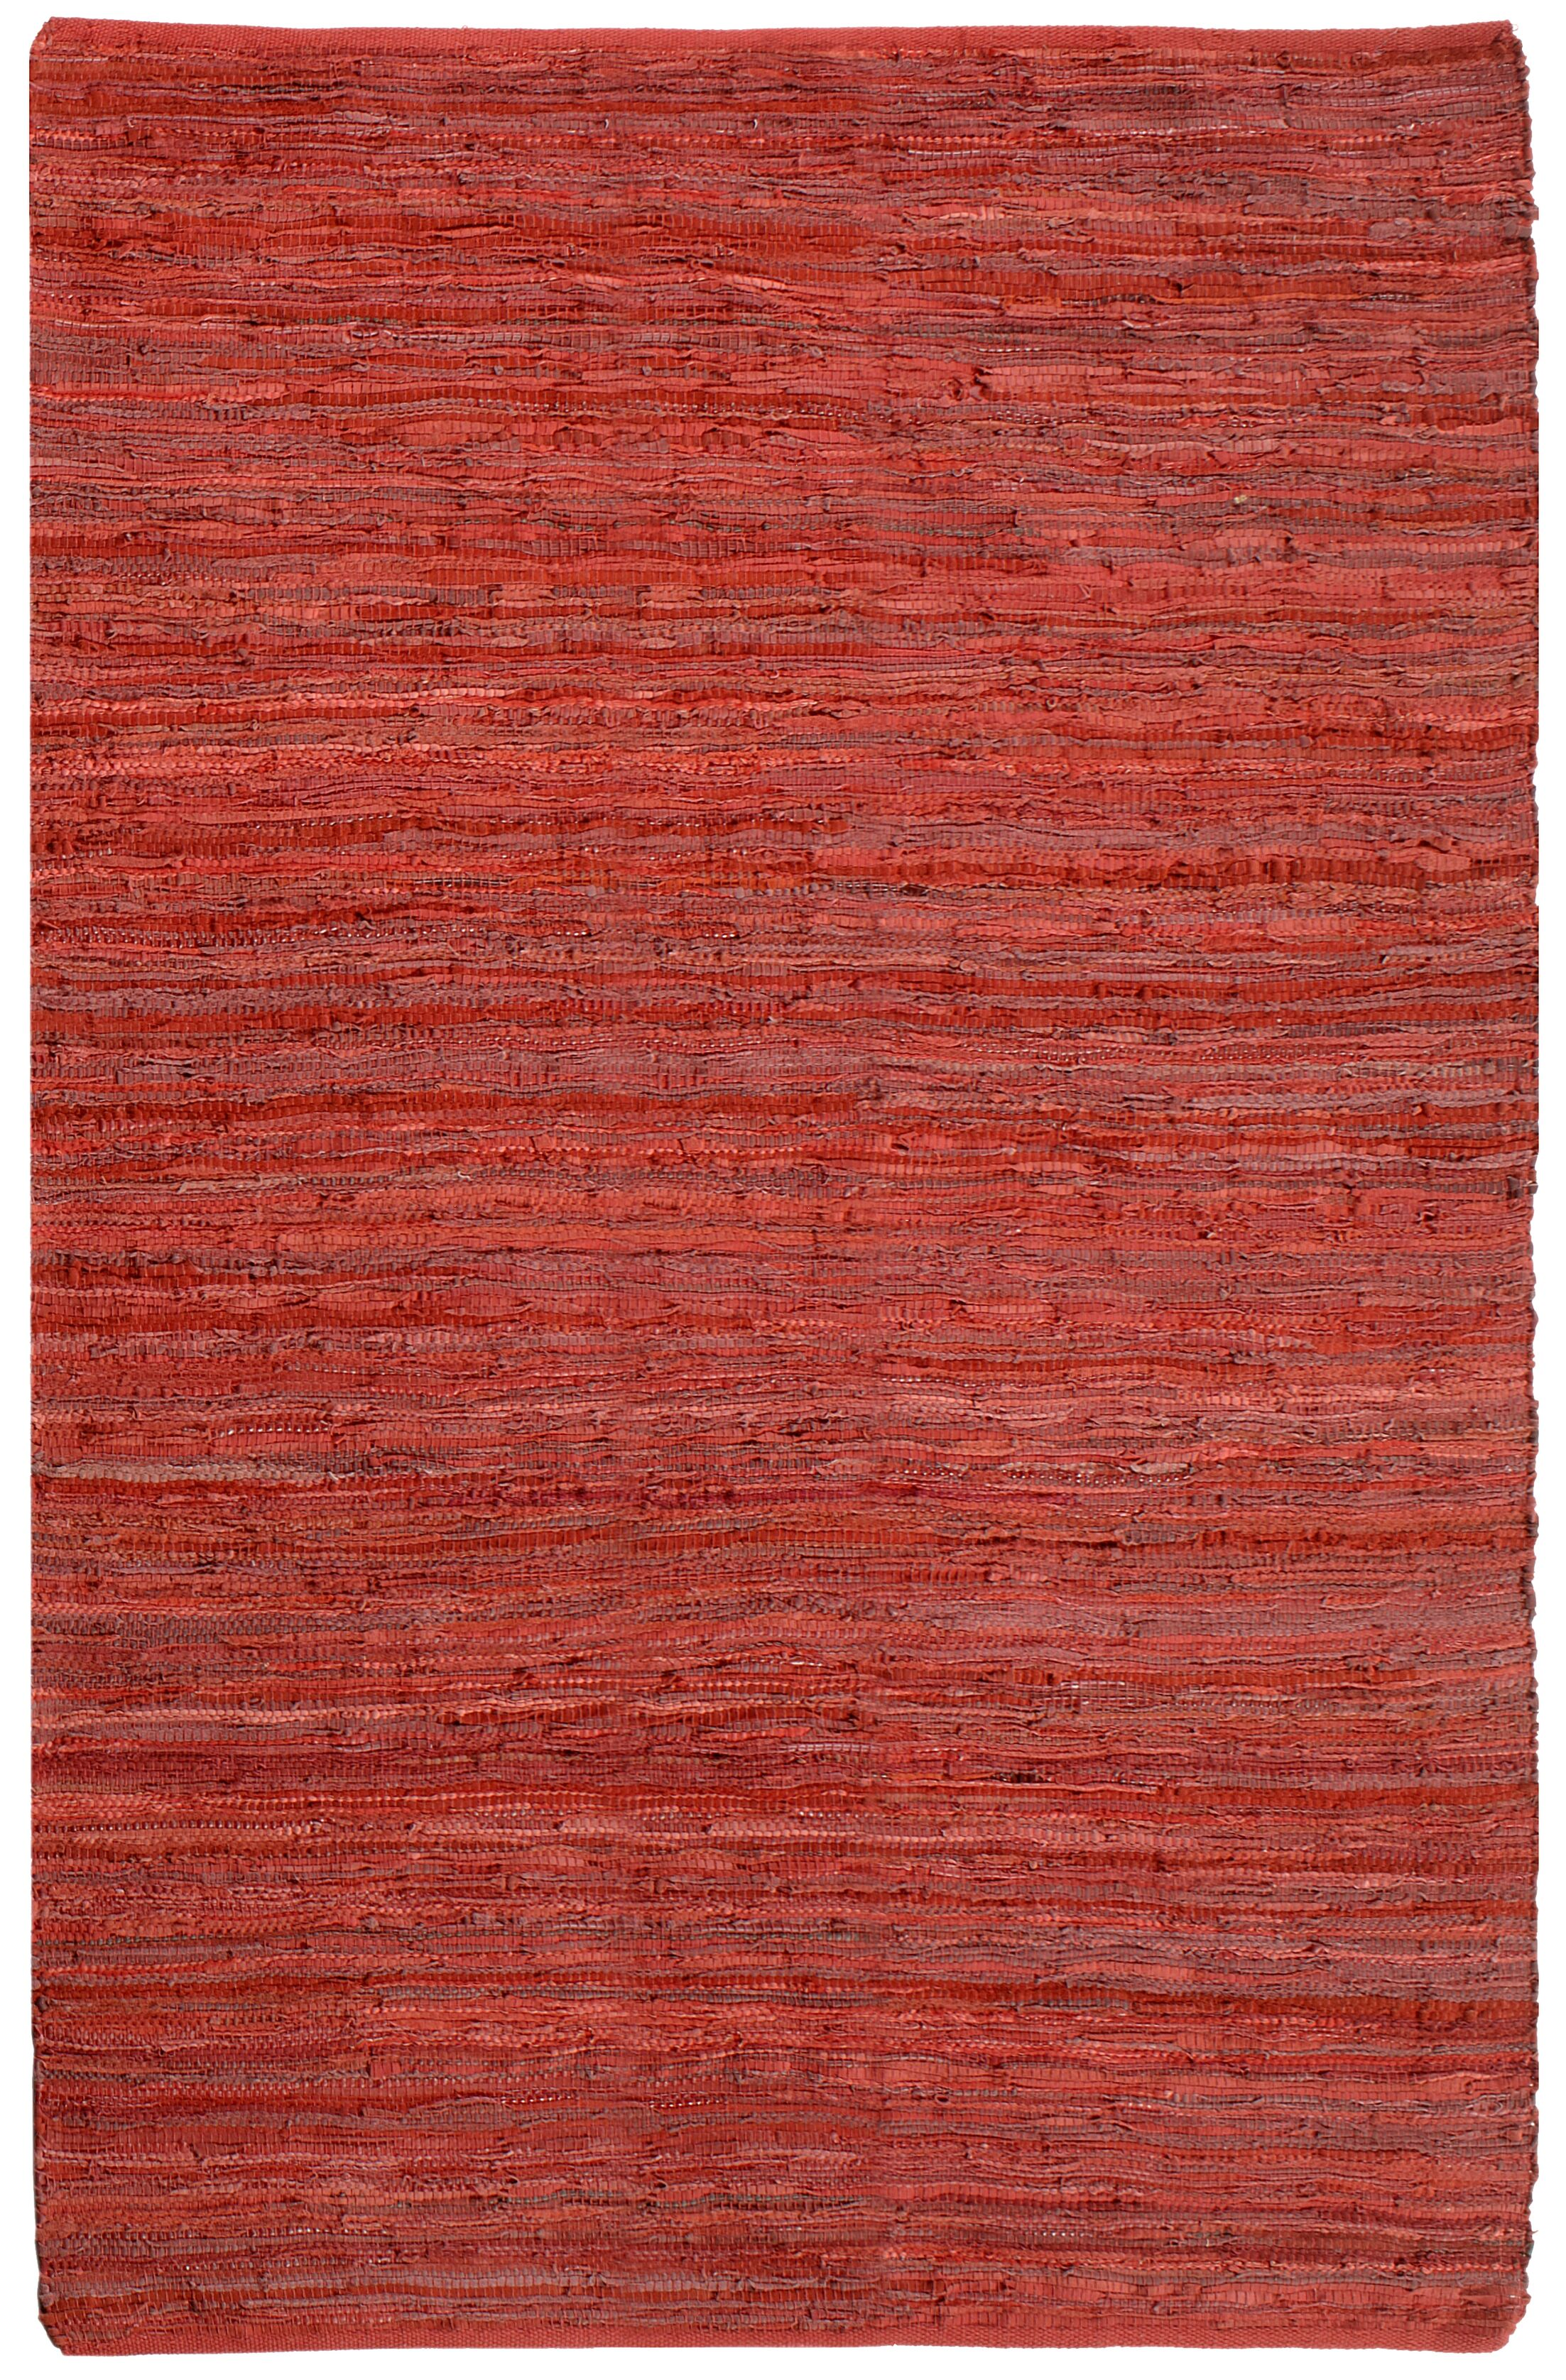 Sandford Chindi Hand Woven Cotton Red Area Rug Rug Size: 4' x 6'